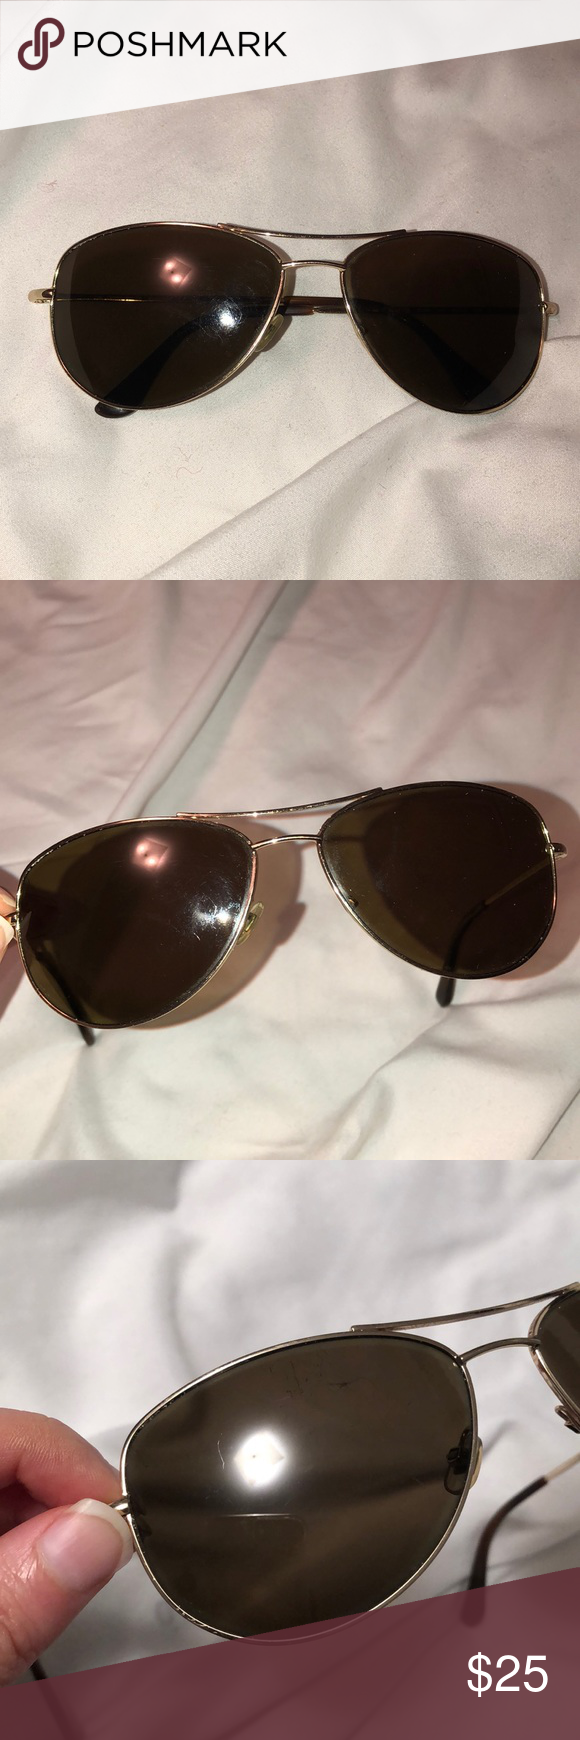 45169d72aff5 Kate Spade Ally Polarized aviator sunglasses, used These are heavily  scratched, and missing a